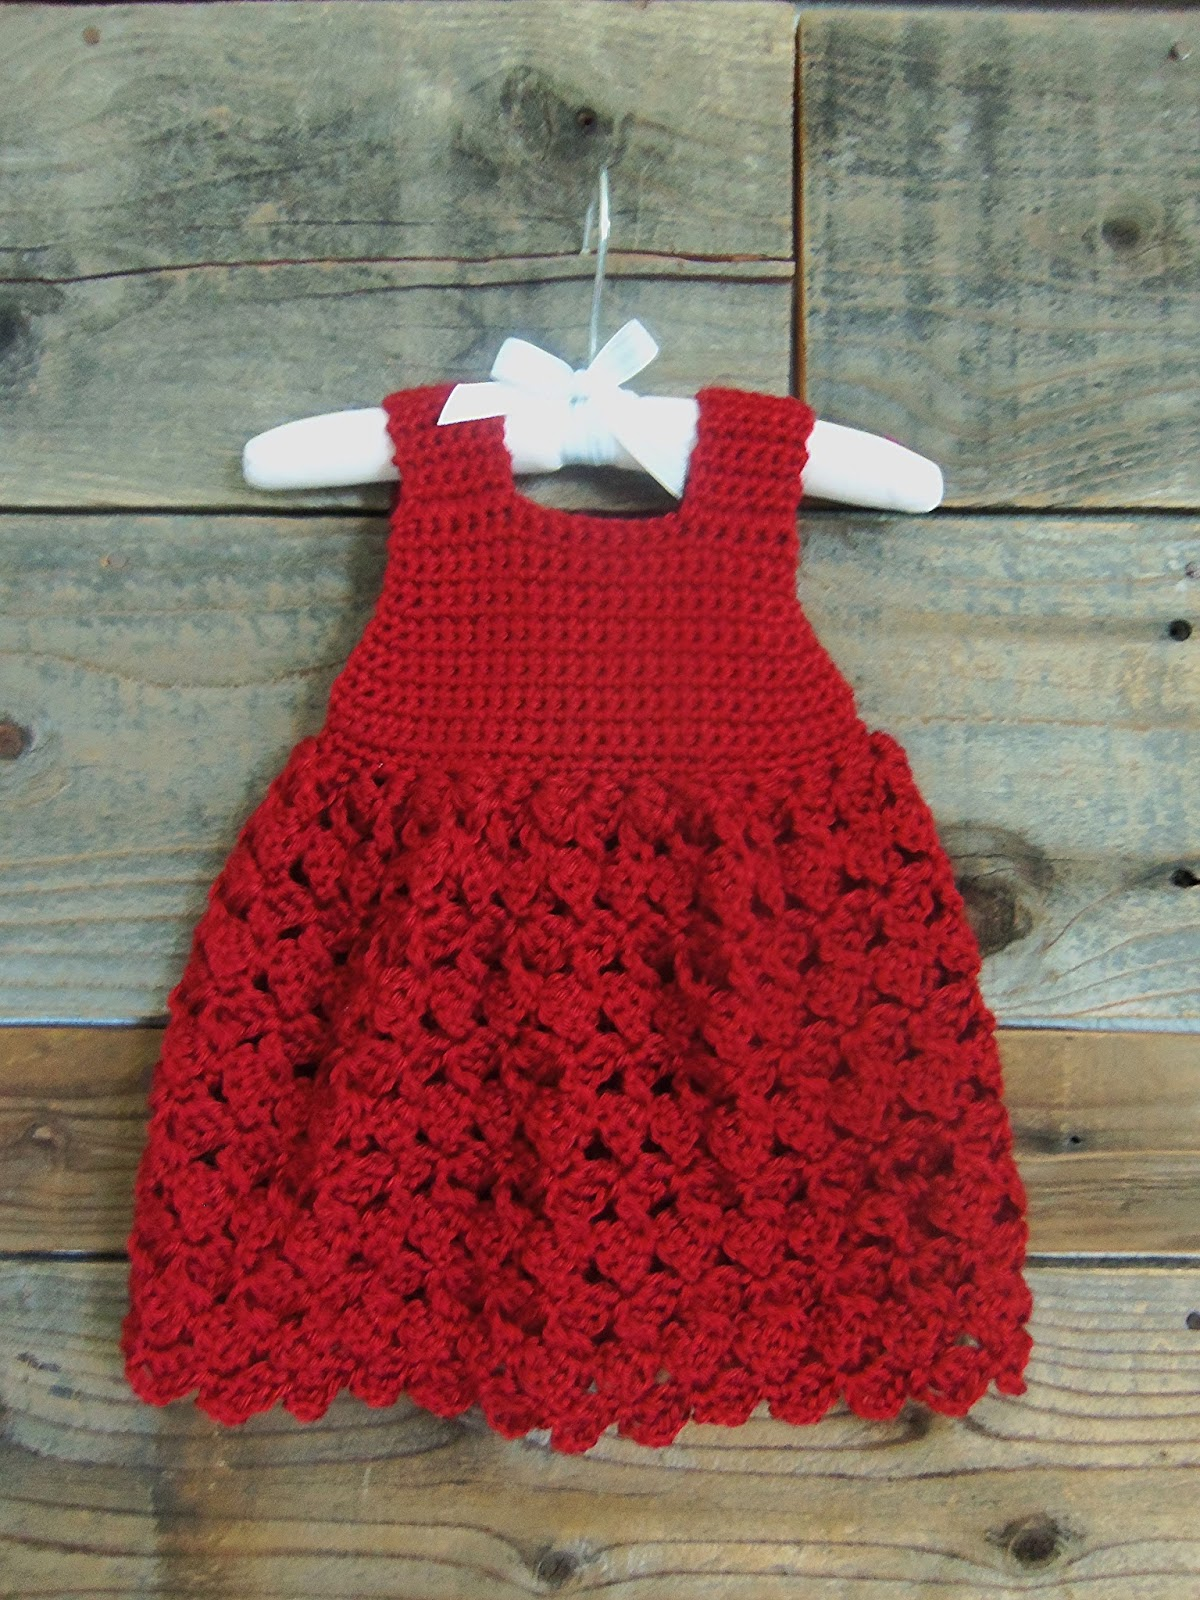 Crochet Baby Winter Dress Pattern : 3squeezes: Crochet Baby Girl Summer/WInter Dresses